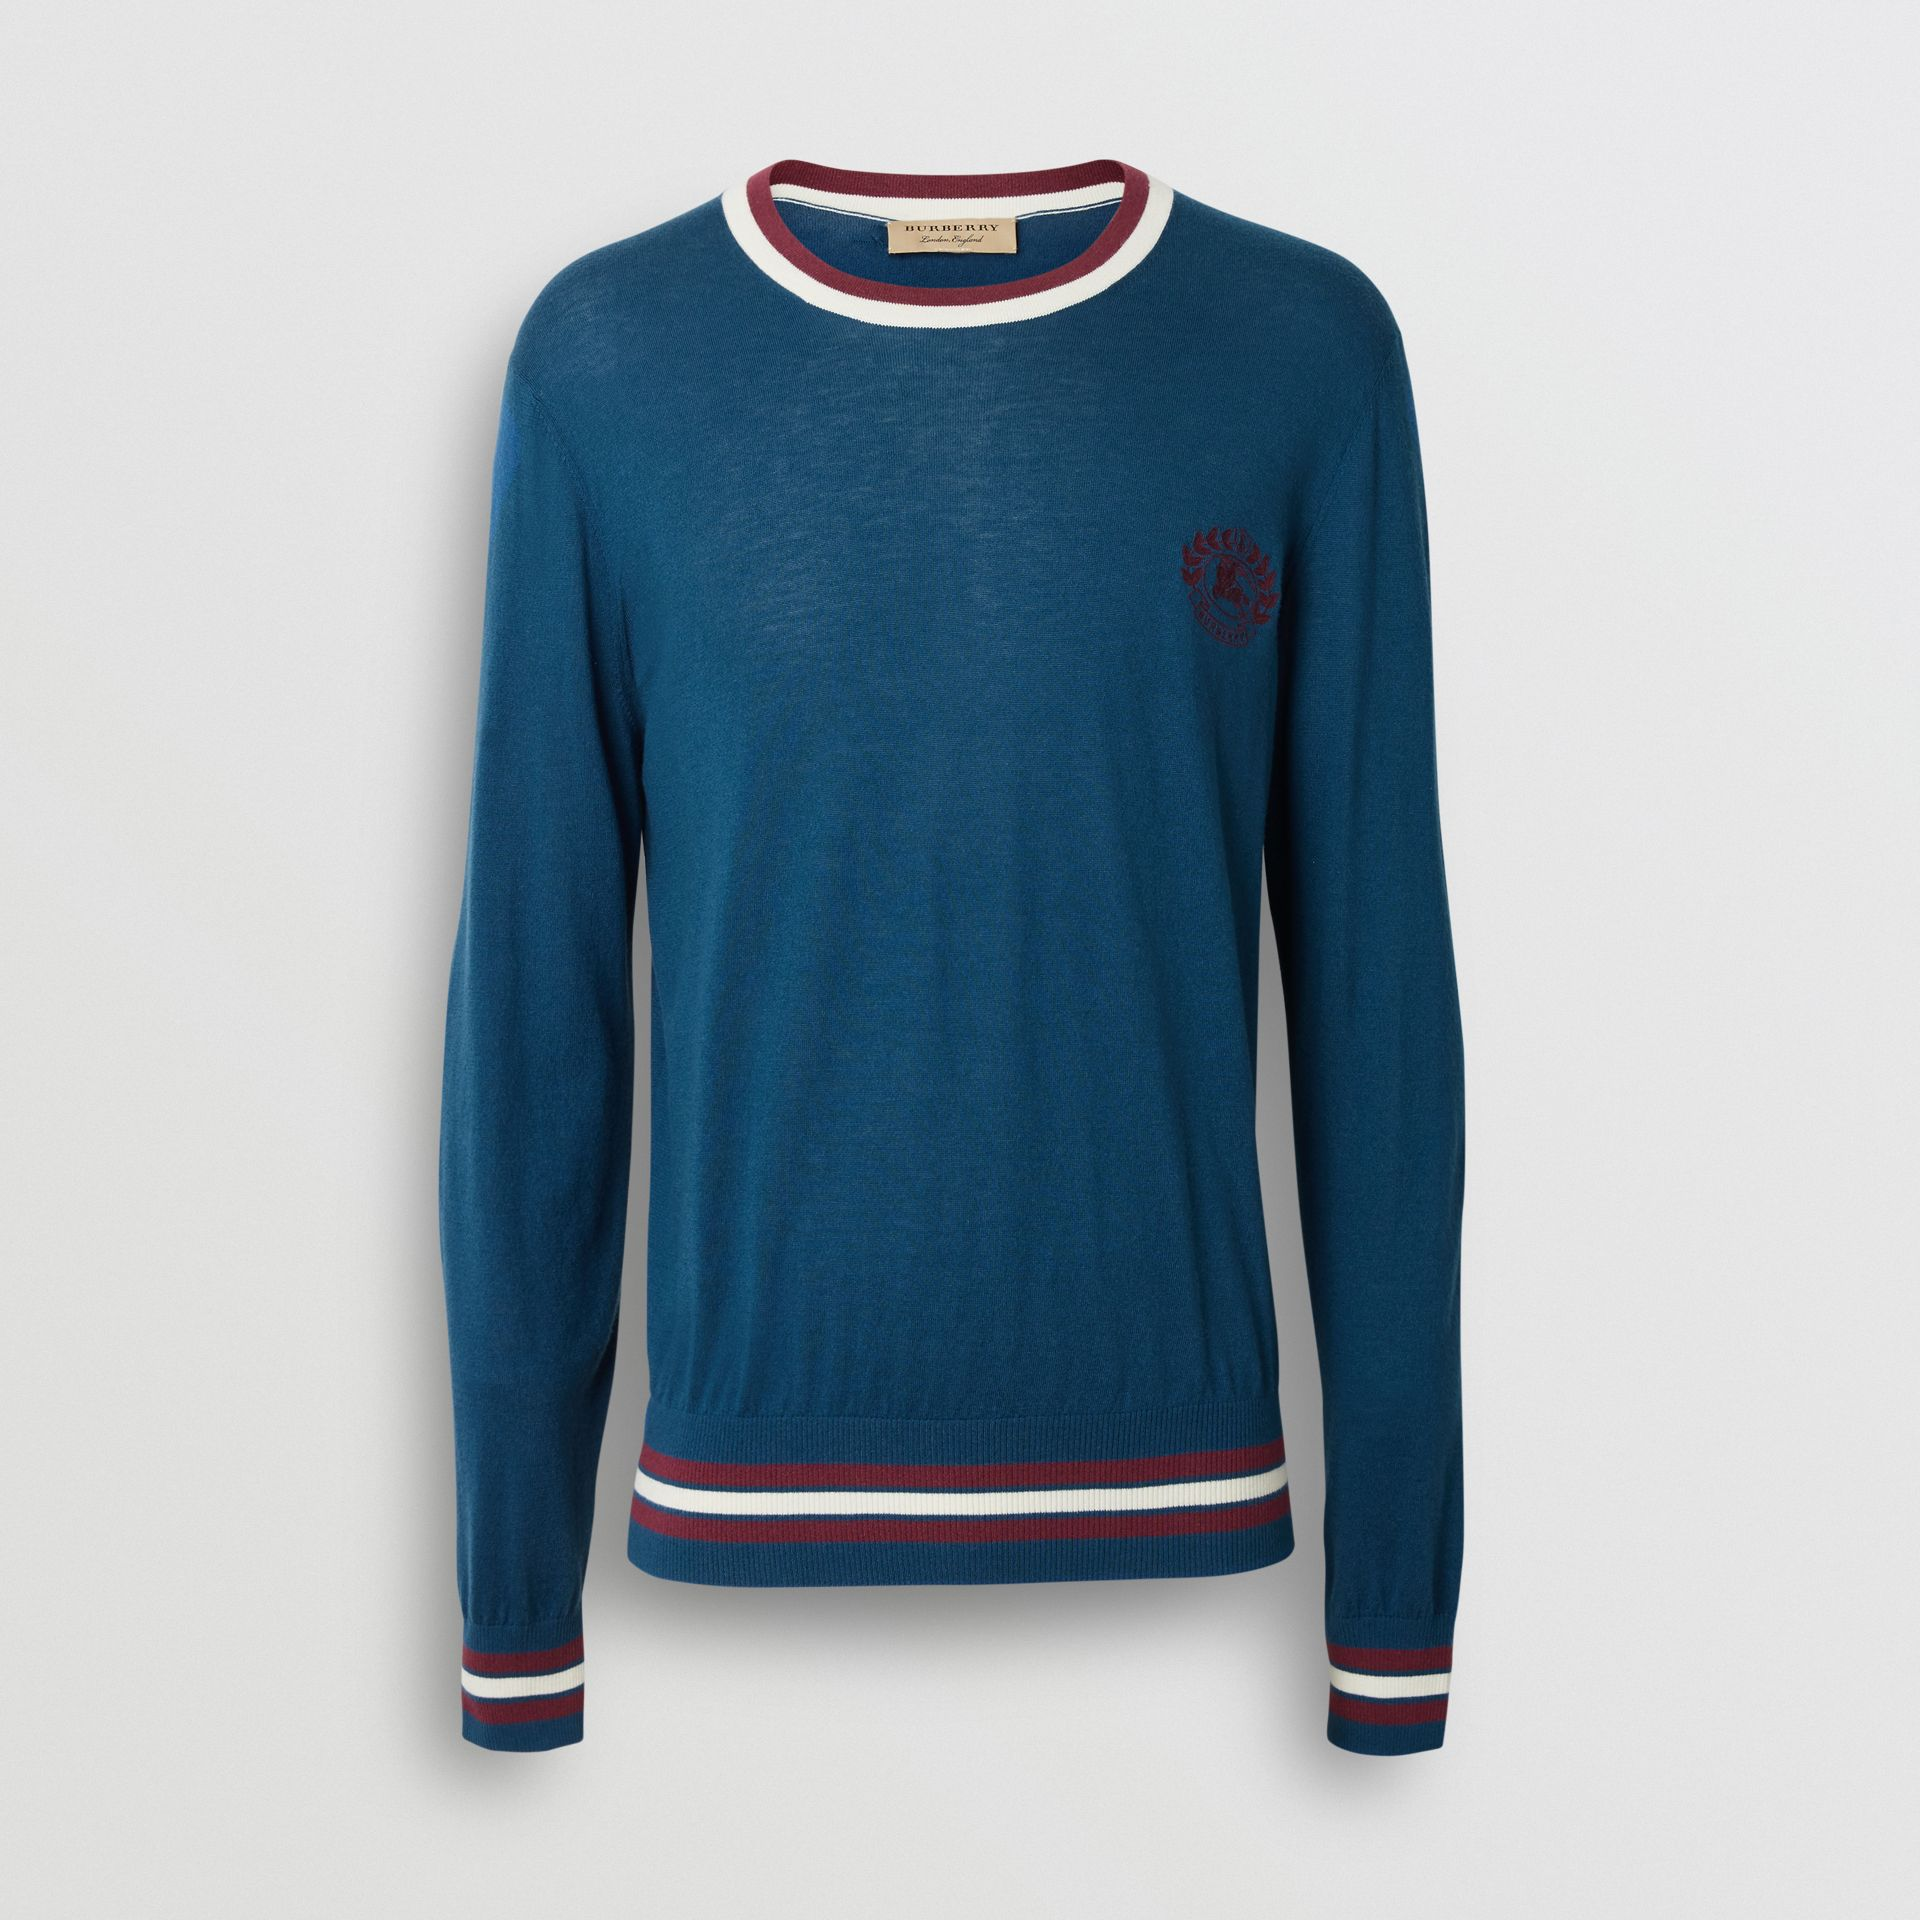 Embroidered Crest Cotton Silk Sweater in Dark Teal Blue - Men | Burberry Australia - gallery image 3